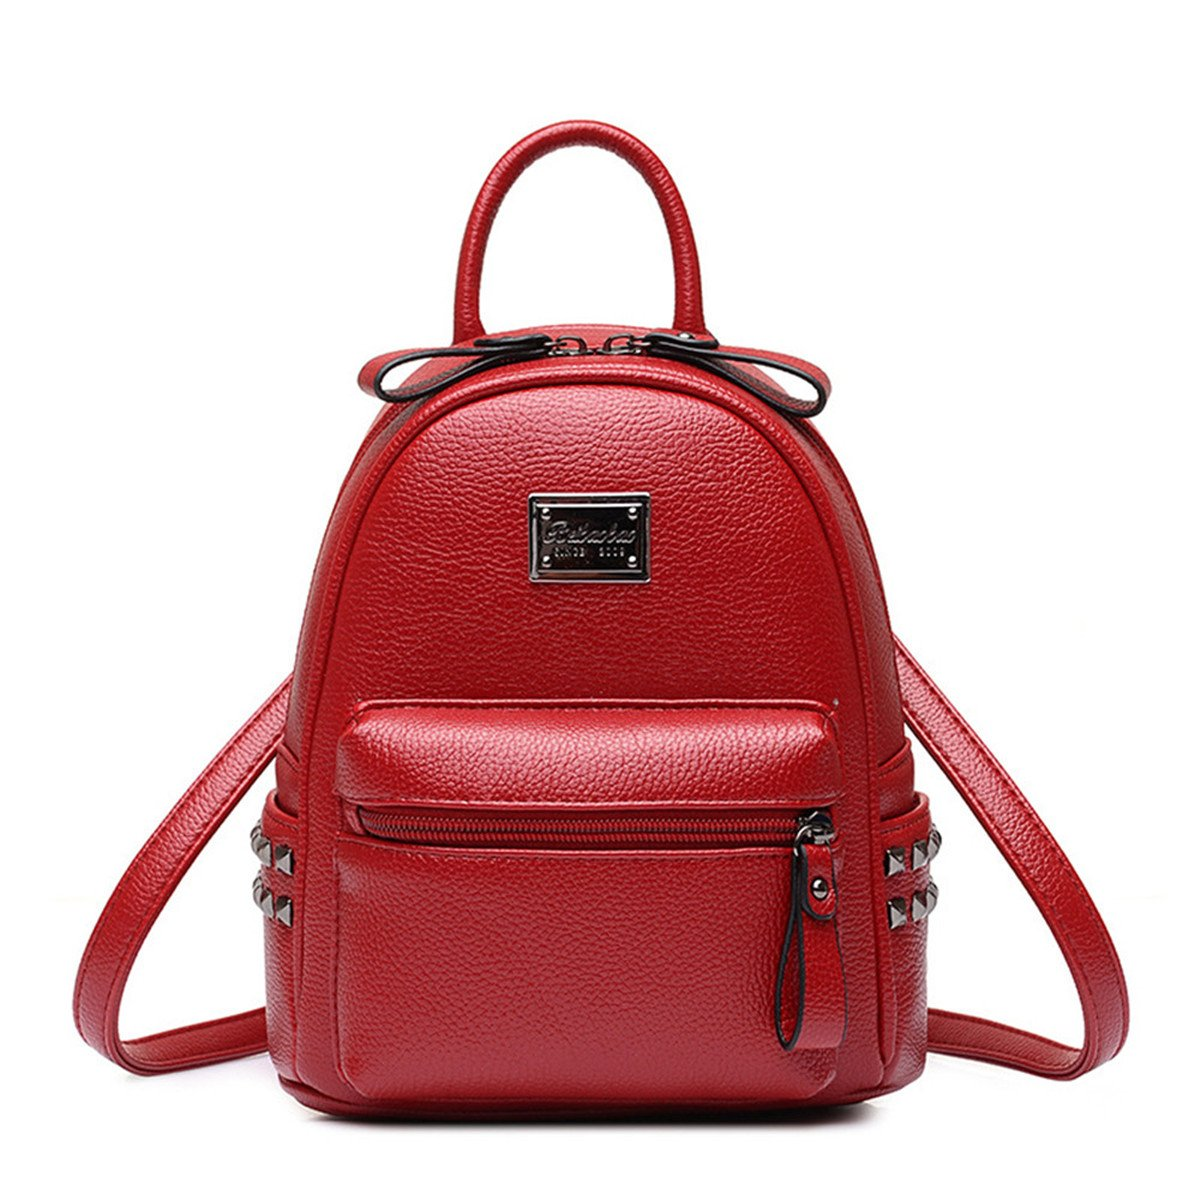 Cute Mini Leather Backpack Casual Daypack Satchel Purse for Girls and Women